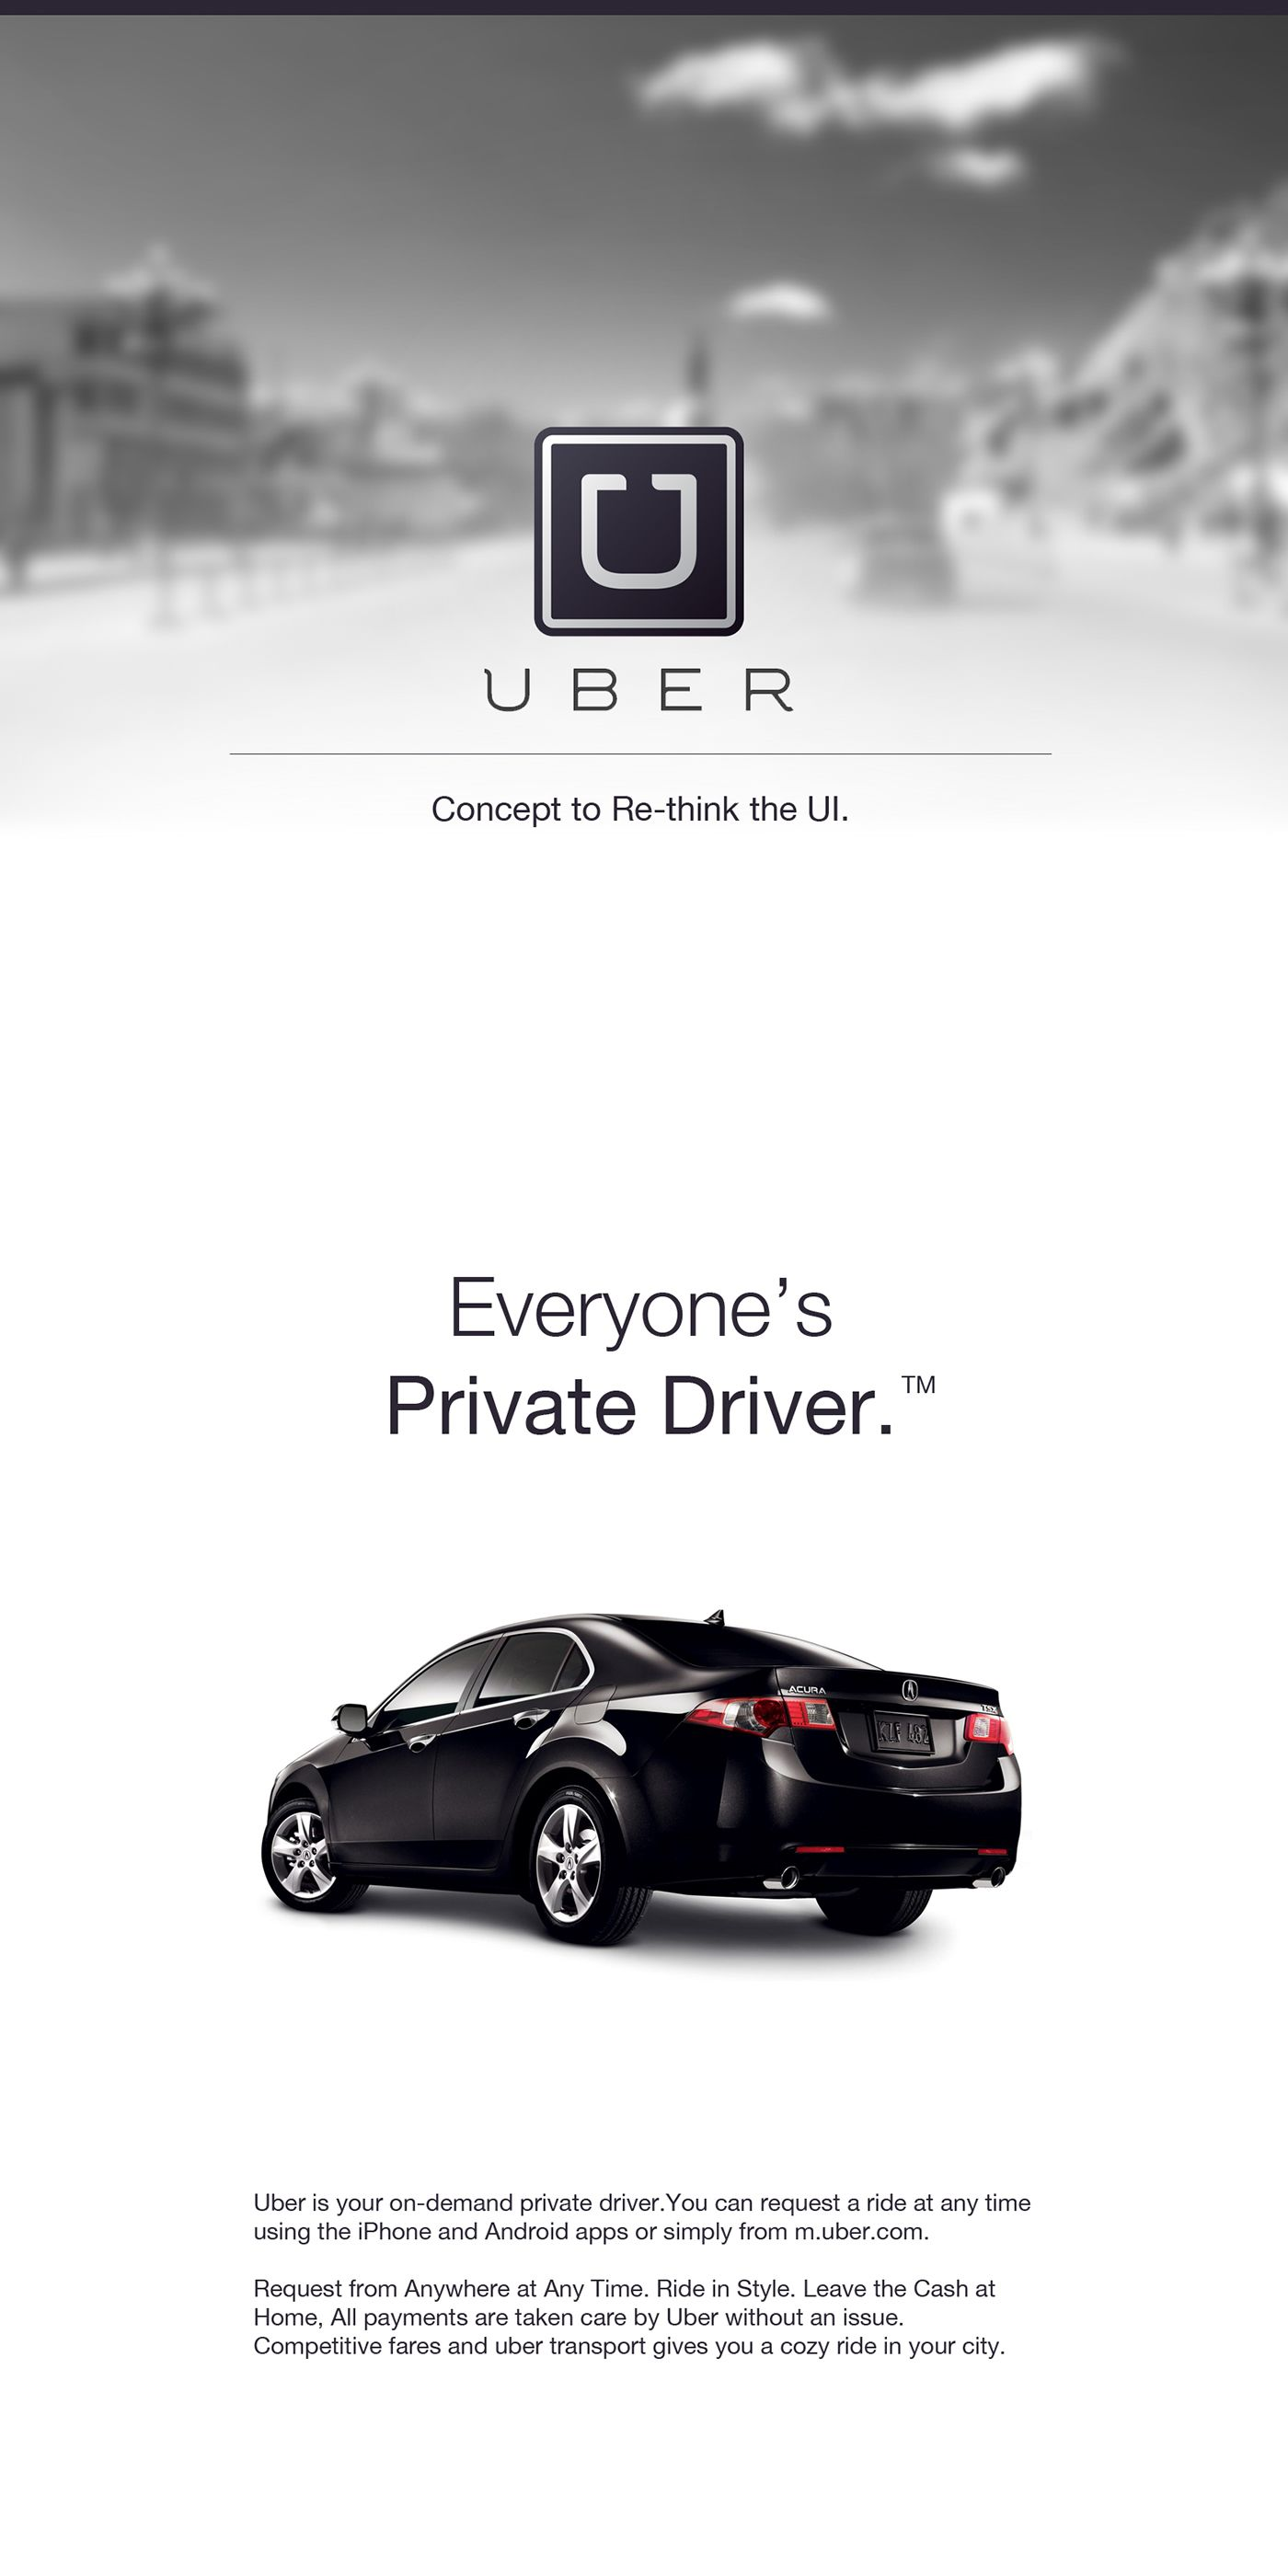 Uber: Rethinking the UI on Behance